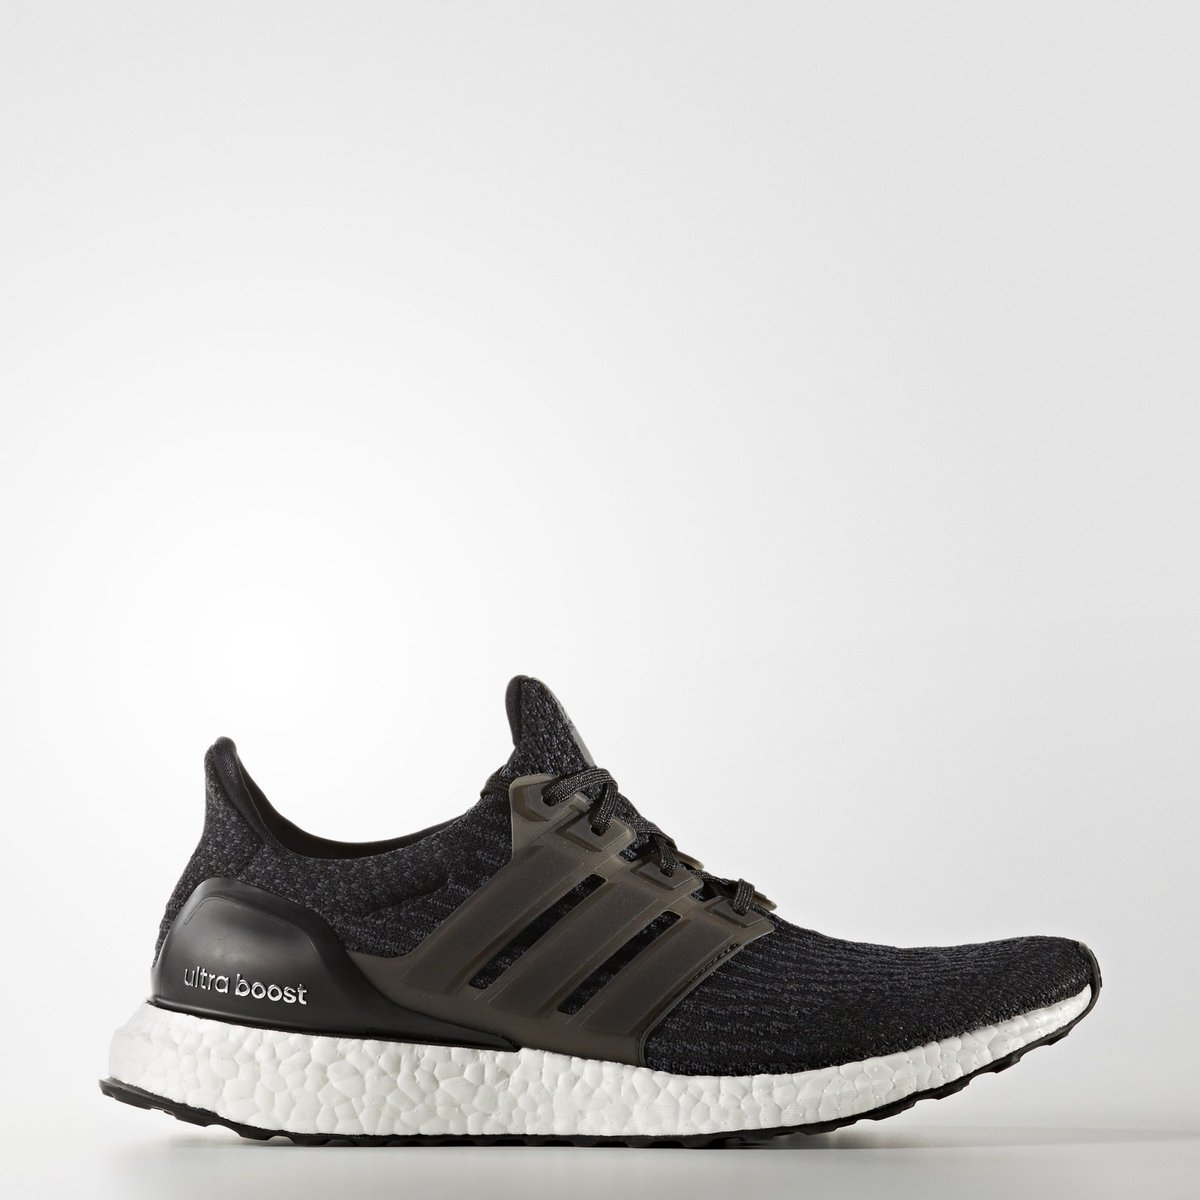 ff6773e0fa0ef The Ultra Boost 3.0 is scheduled to release tomorrow on  FinishLine. Stay  tuned for release updates.pic.twitter.com Qm1lPXBI2G